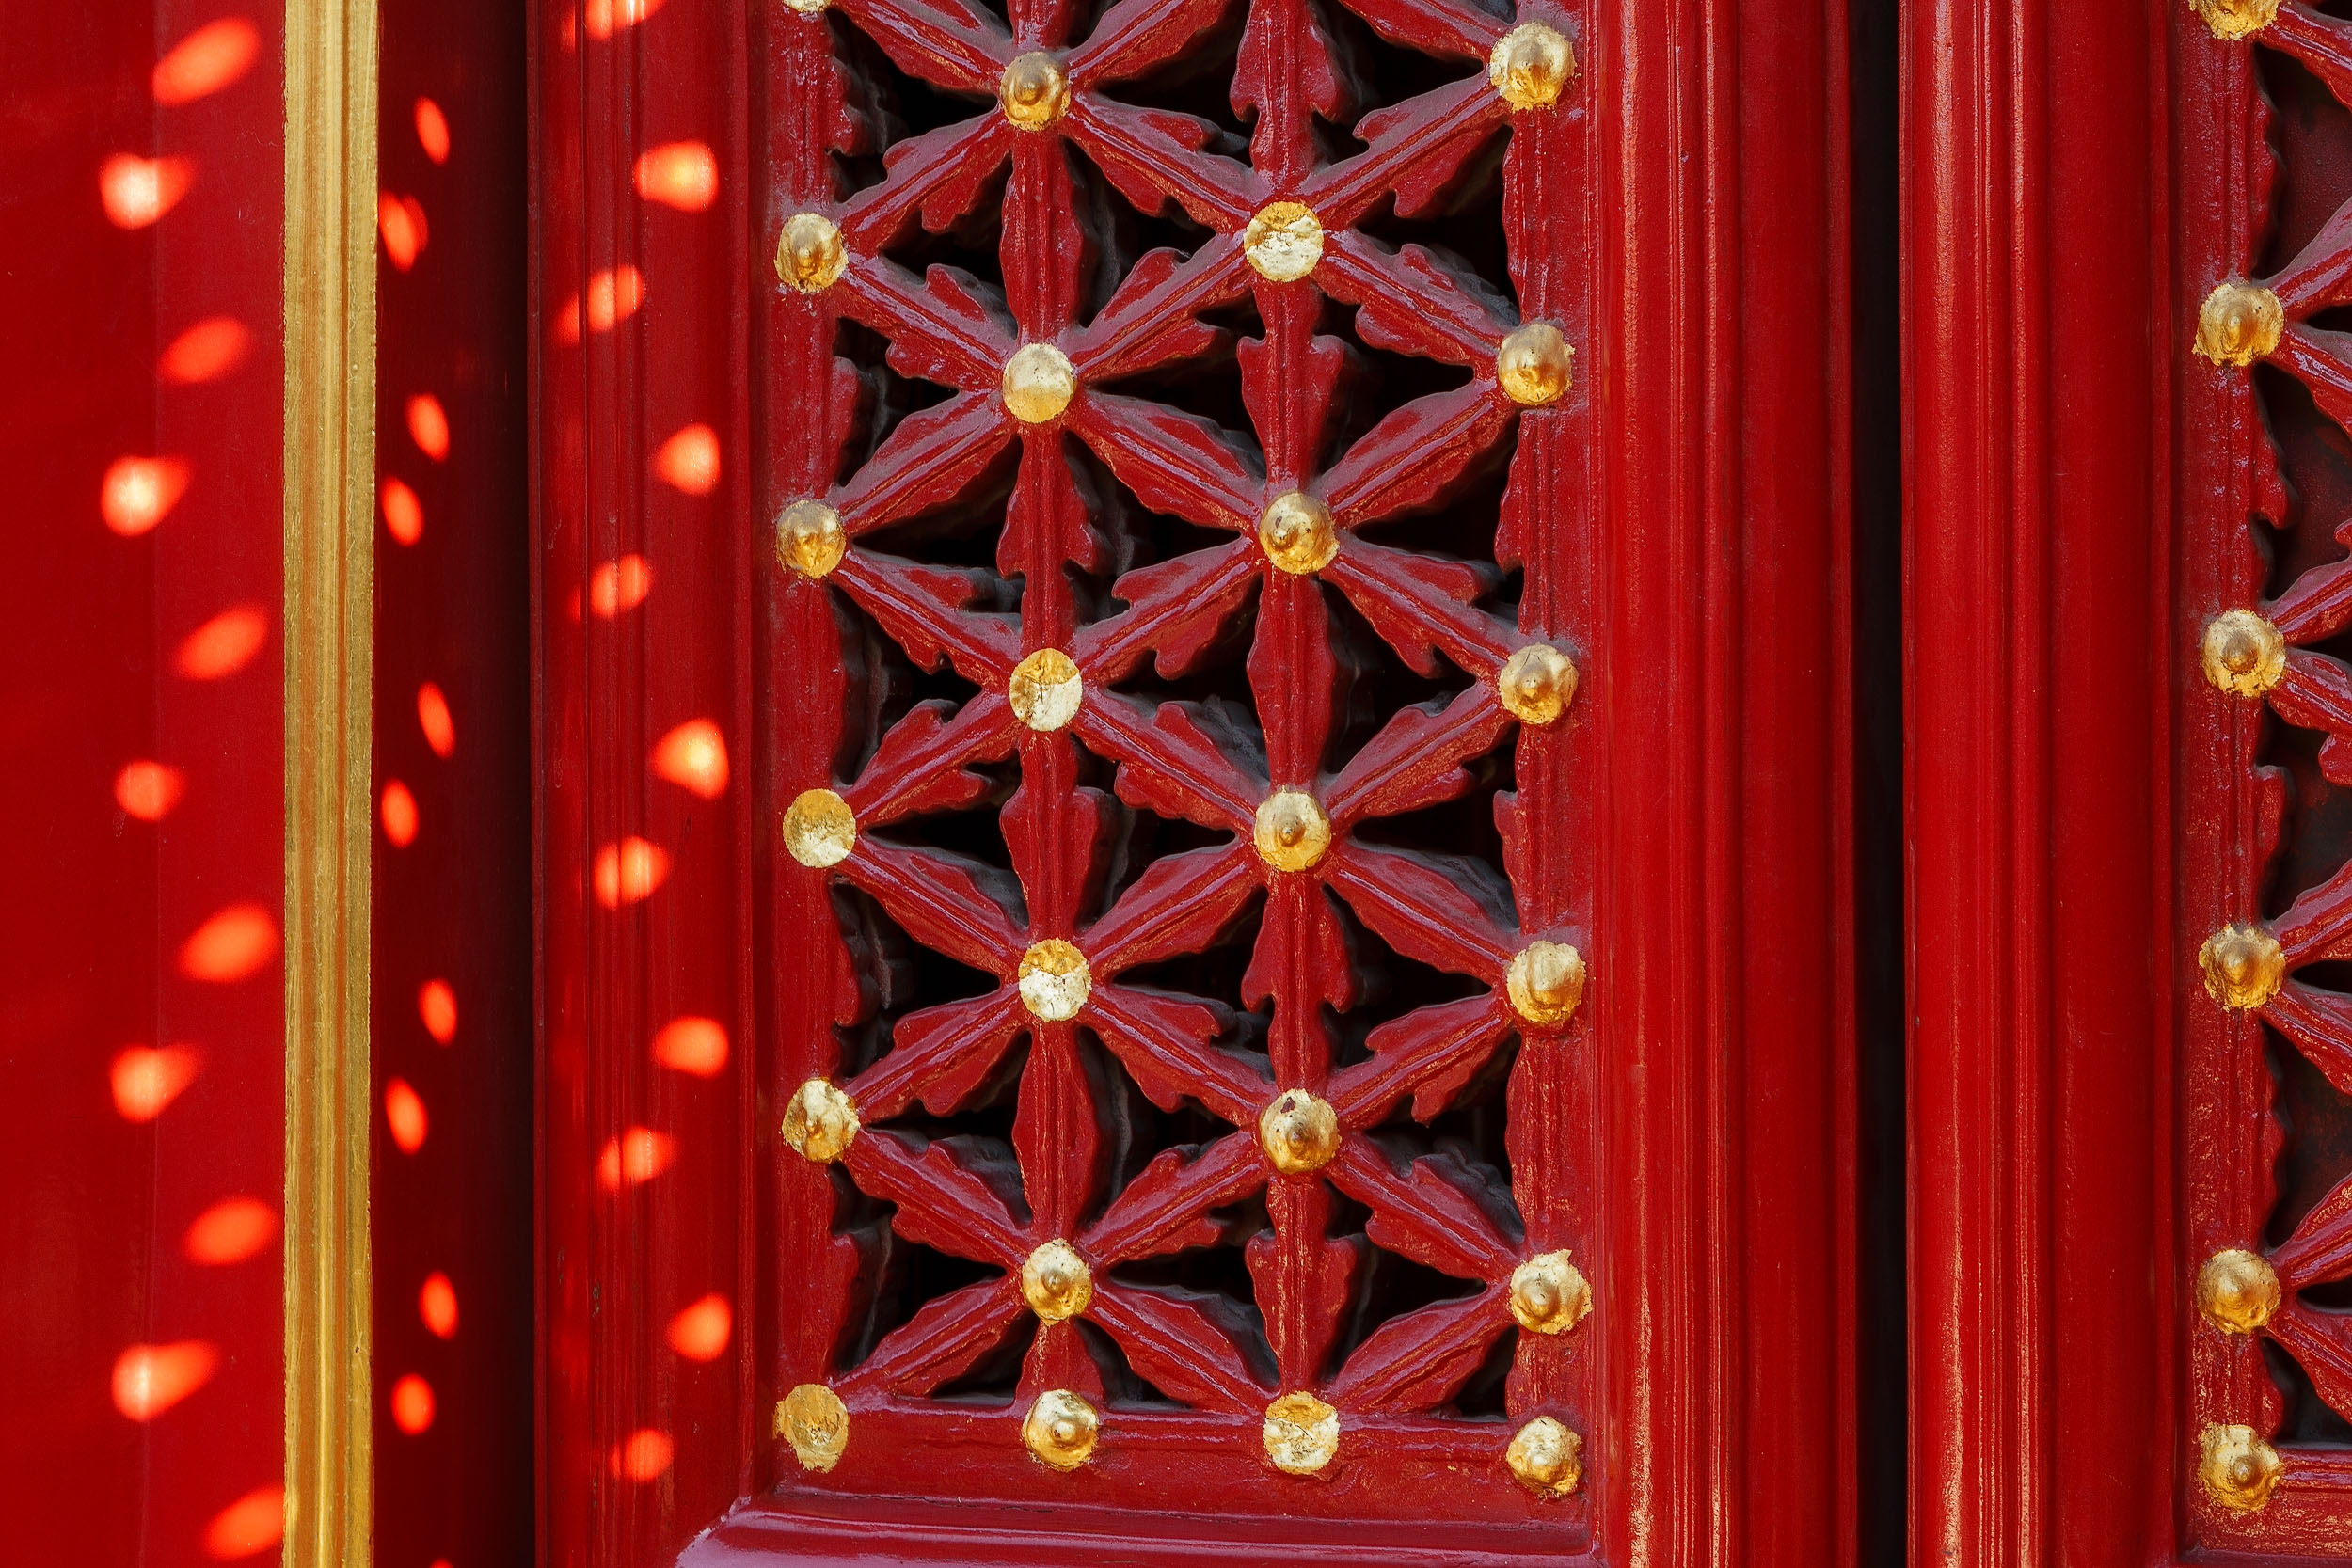 Light throws interesting shapes on a freshly painted window shutter in  The Forbidden City  in  Beijing, China .